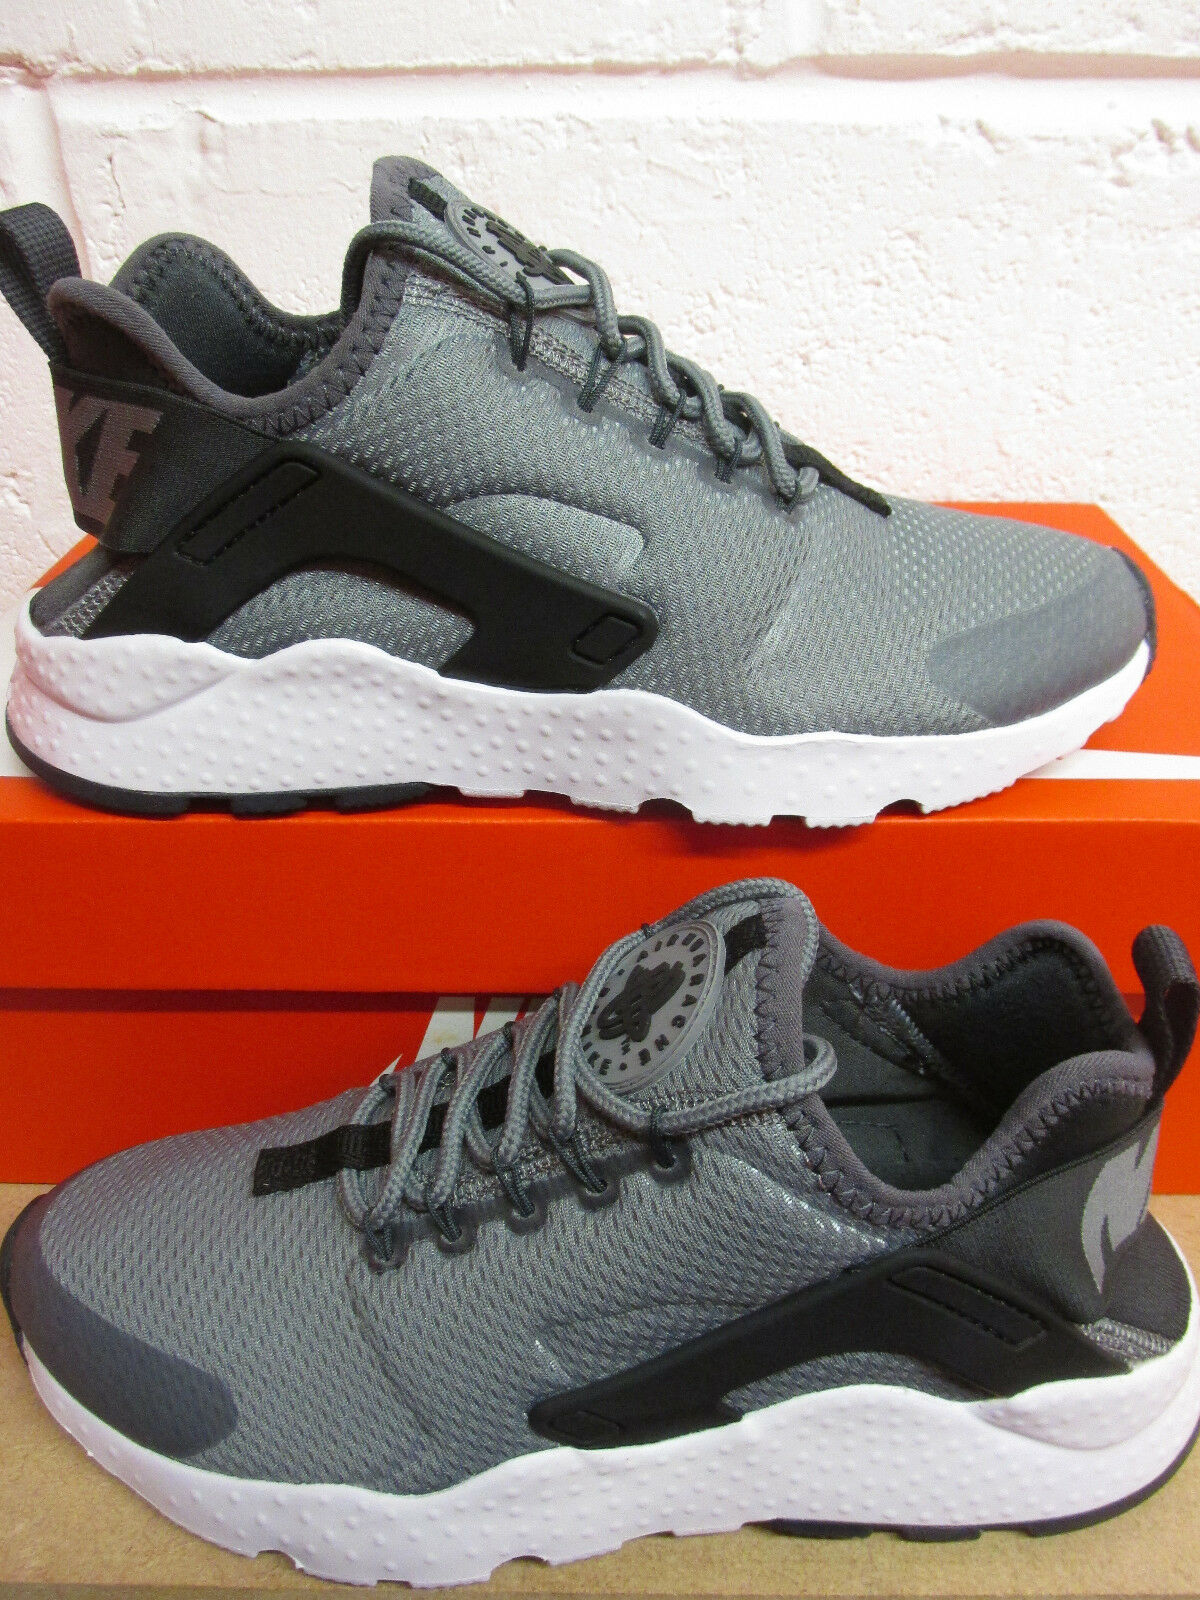 Nike Femme Air Huarache Run Ultra Running Baskets 819151 007 Baskets Chaussures